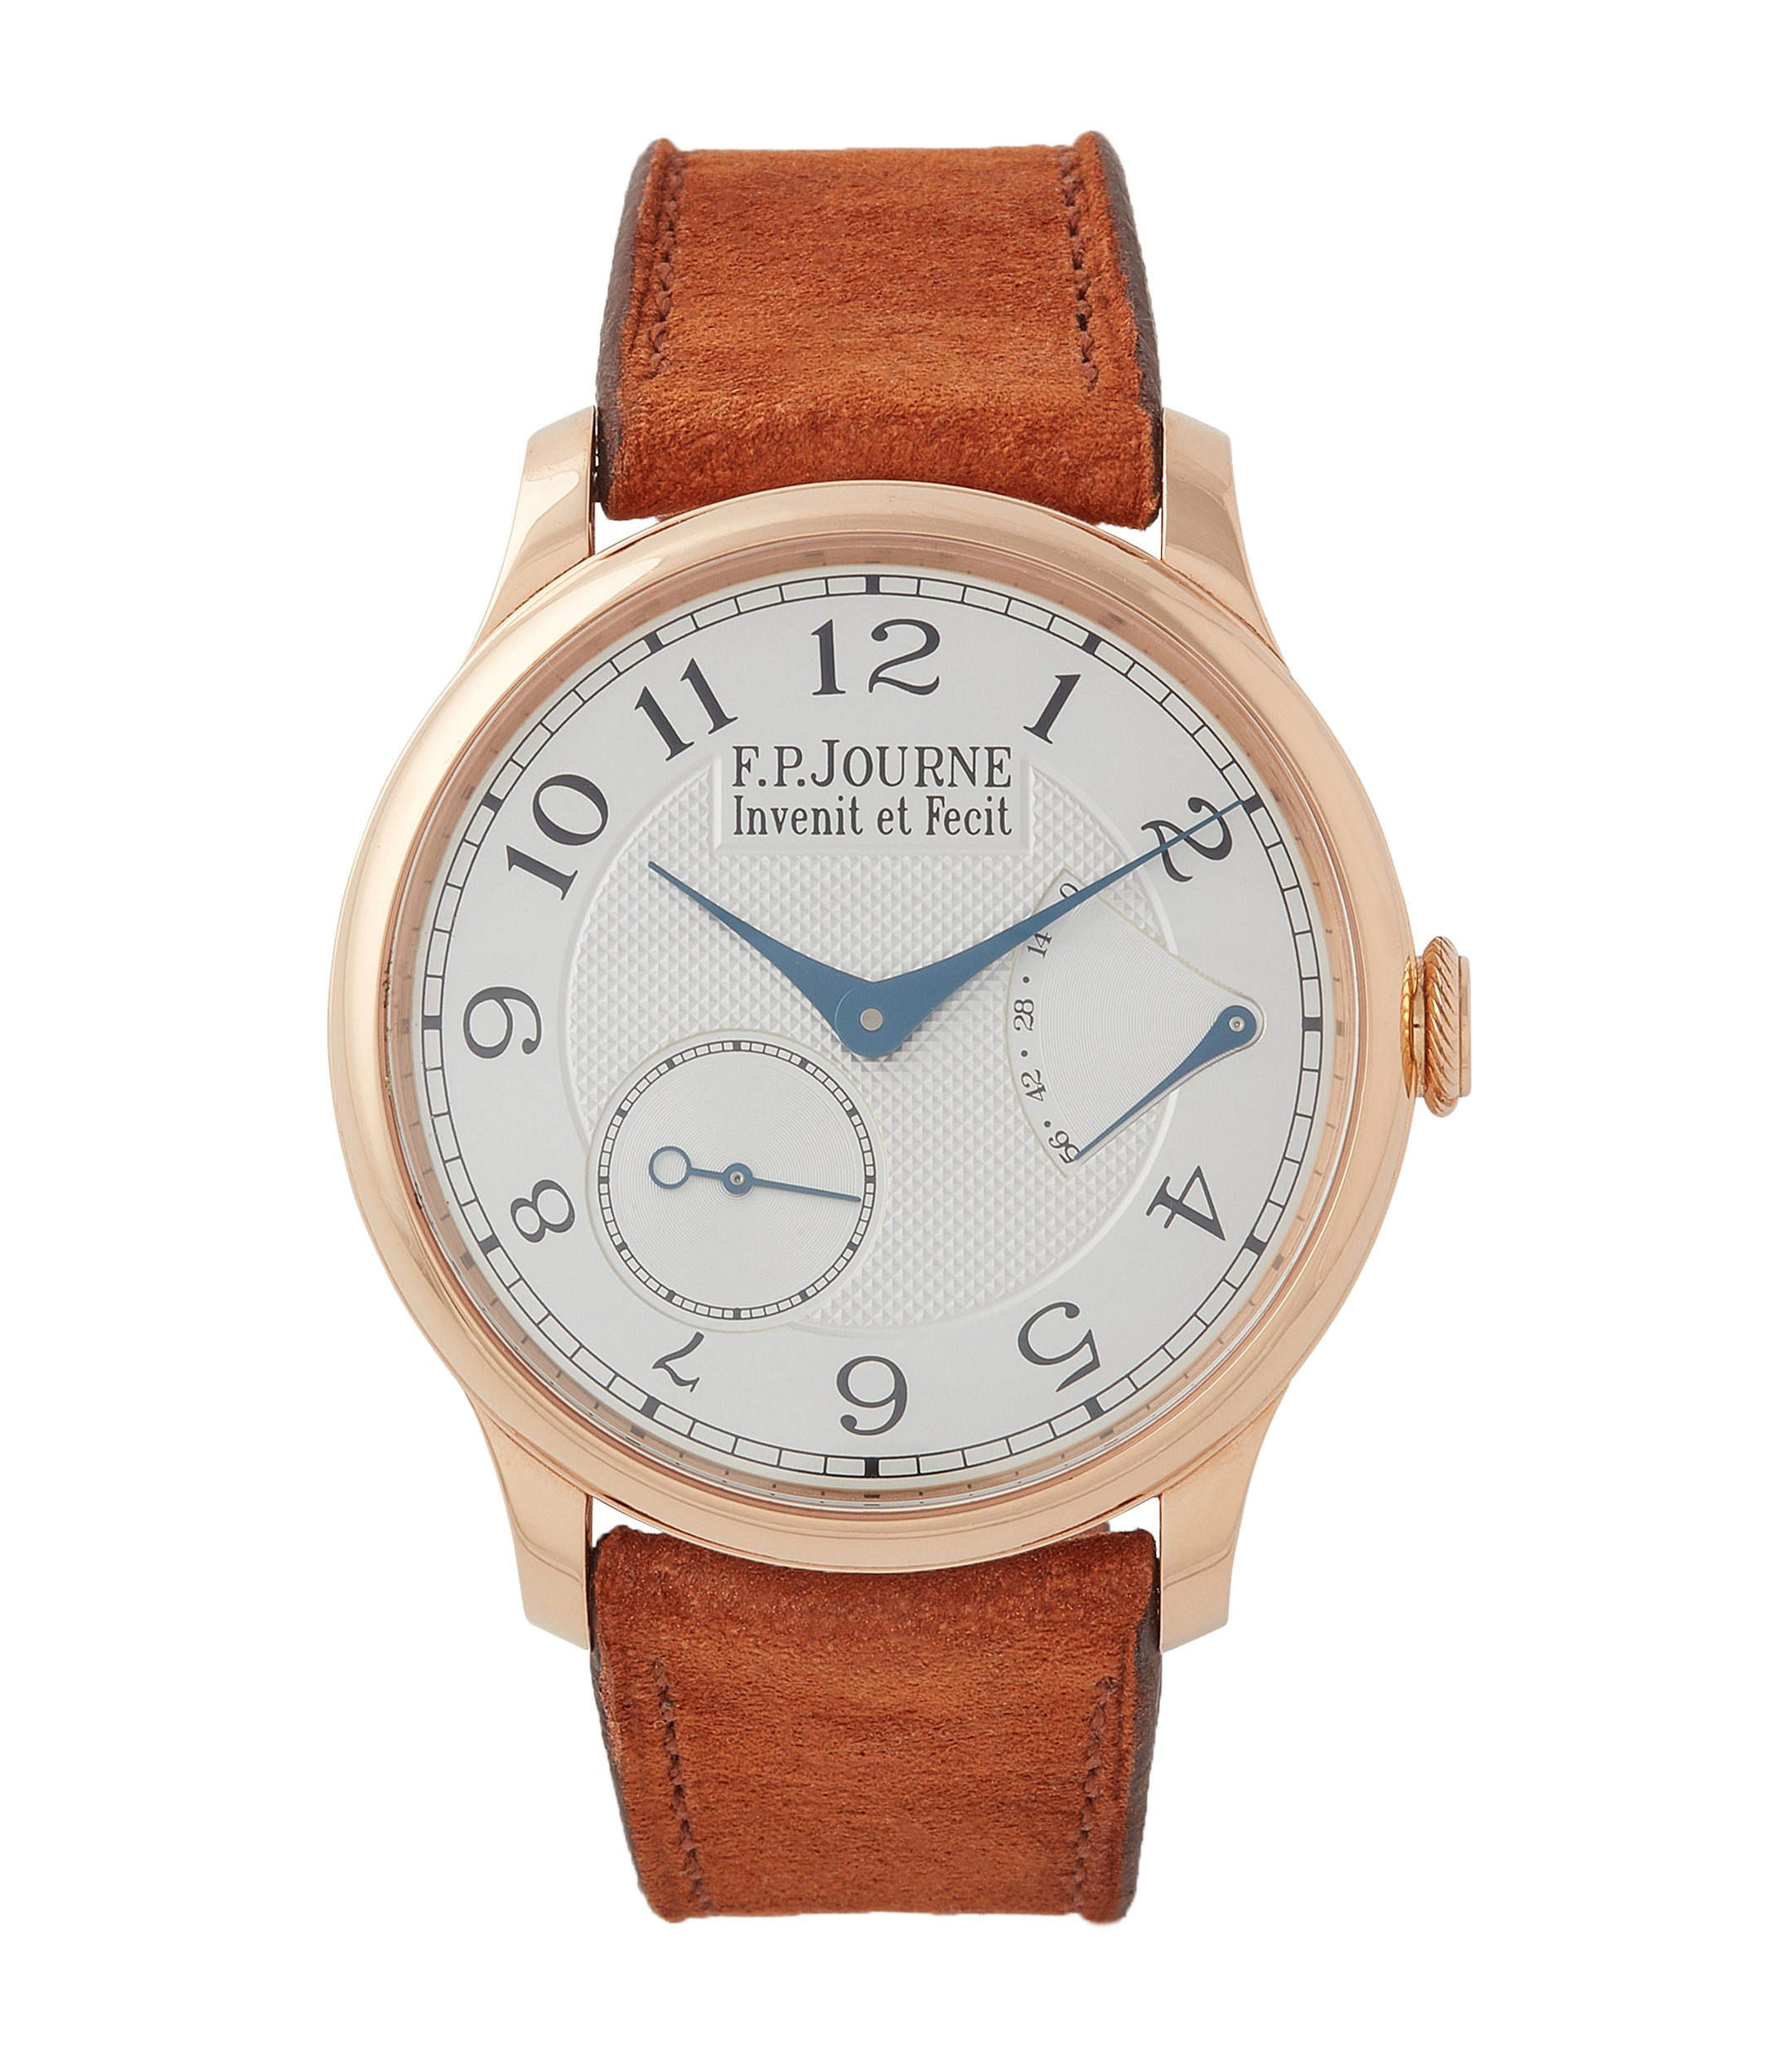 buy F. P. Journe Chronometre Souverain CS.RG.38 rose gold silver dial watch for sale online at A Collected Man London UK specialist of rare watches